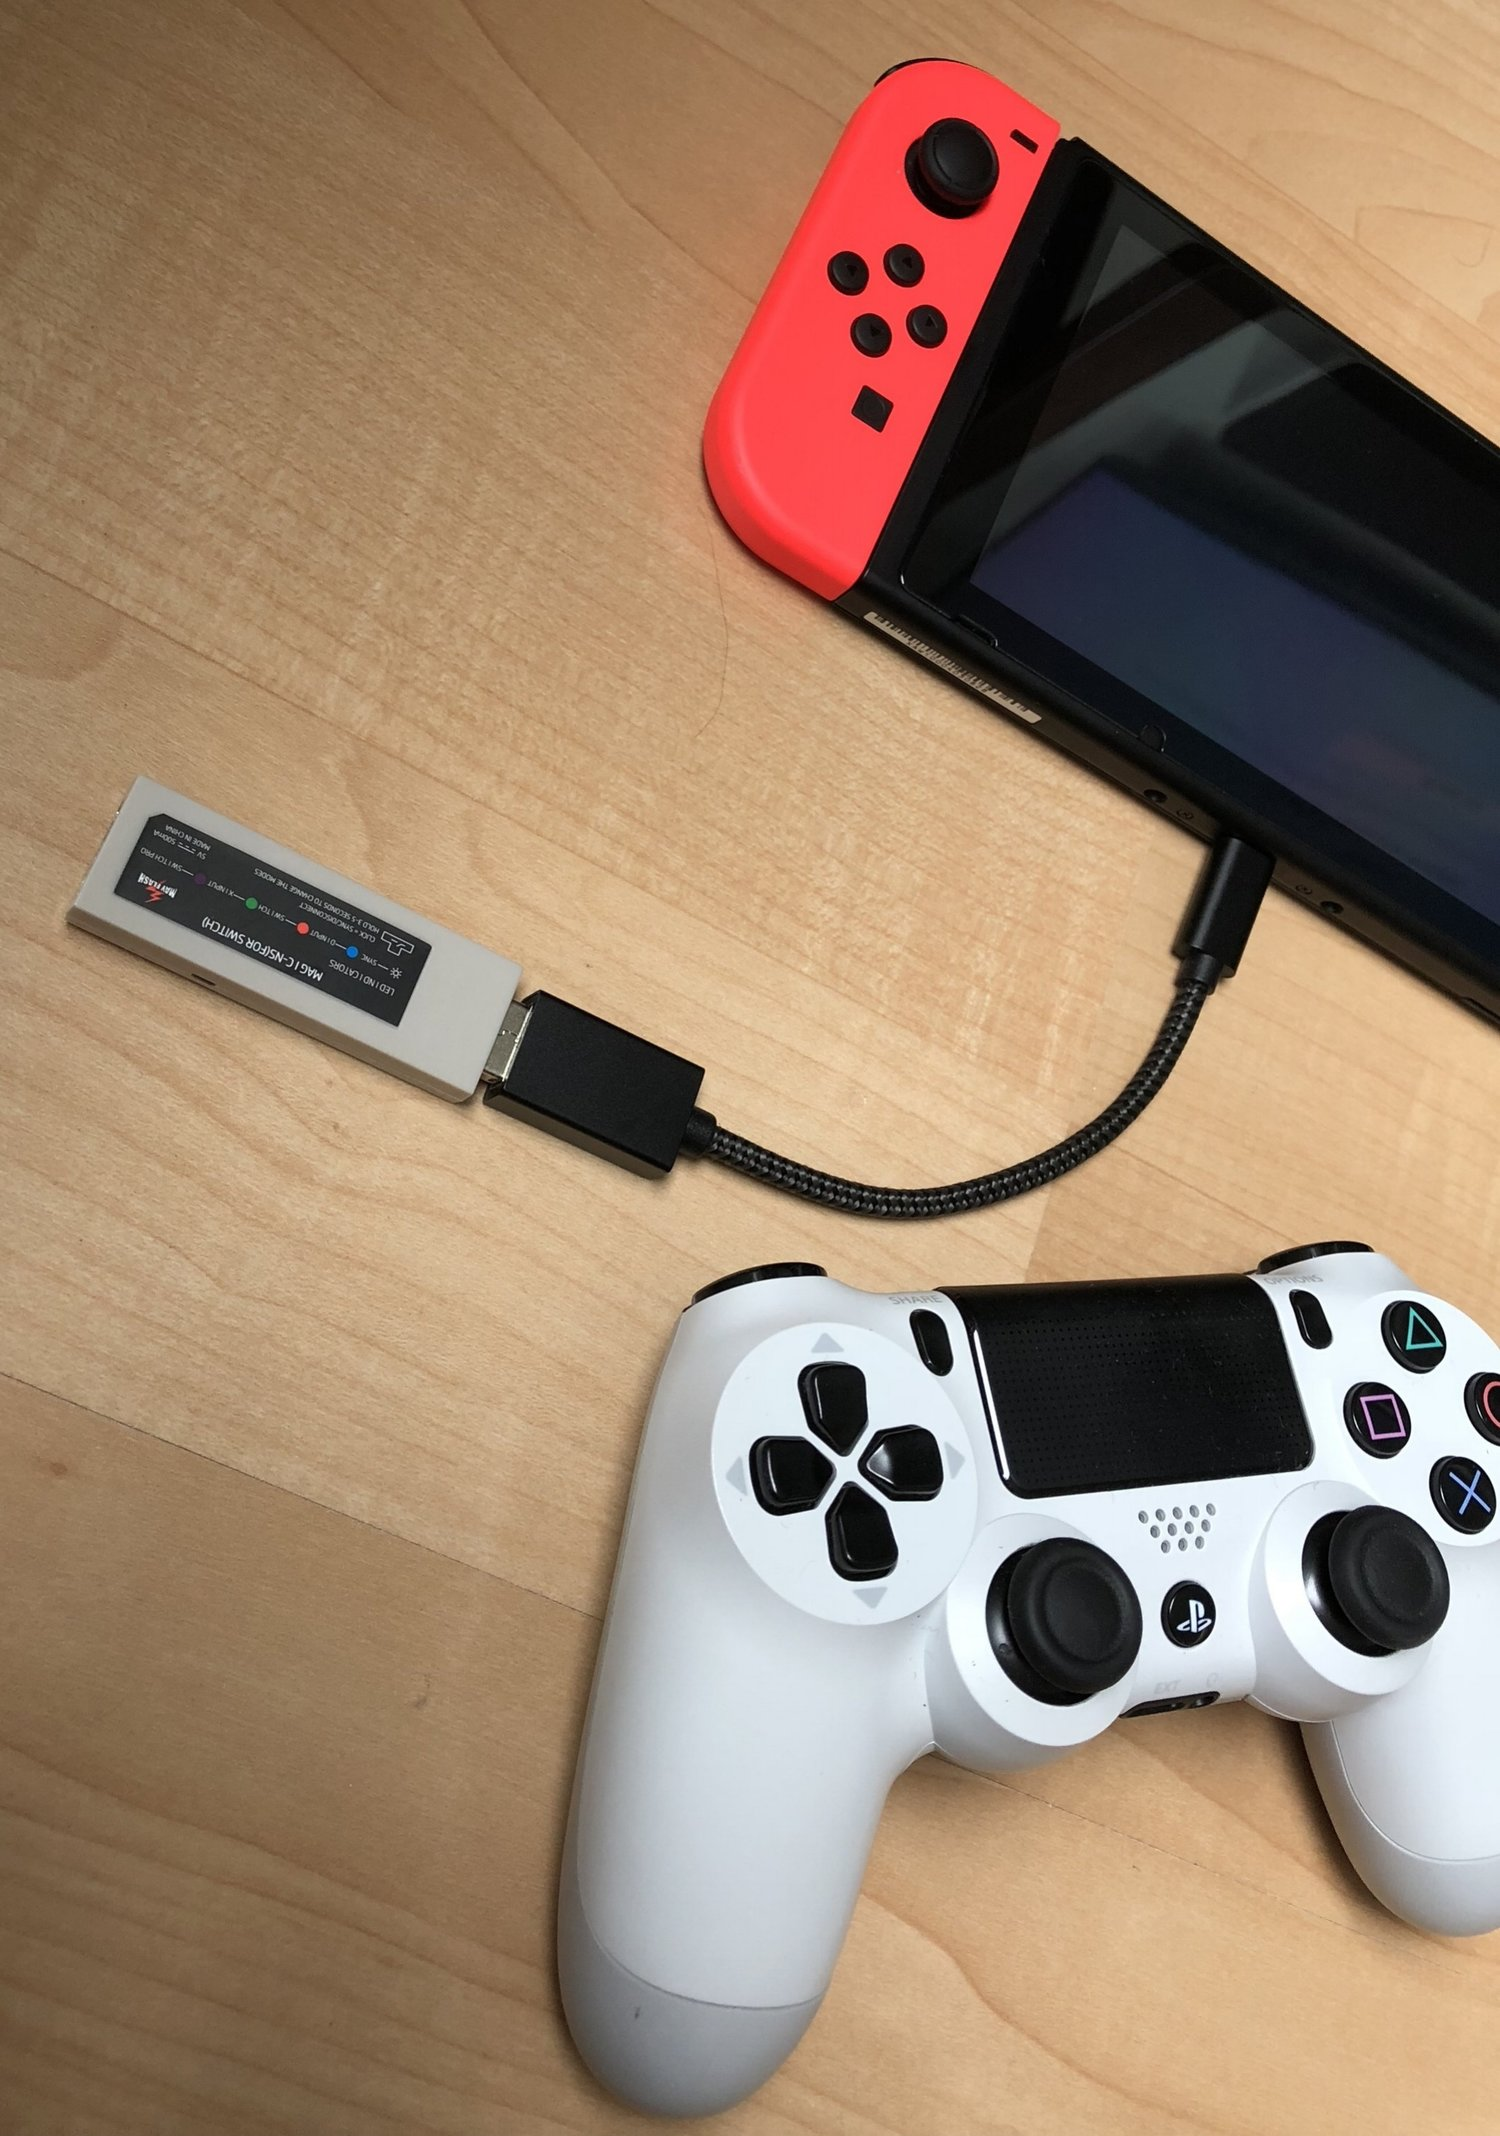 Image result for How to pair nintendo switch controller